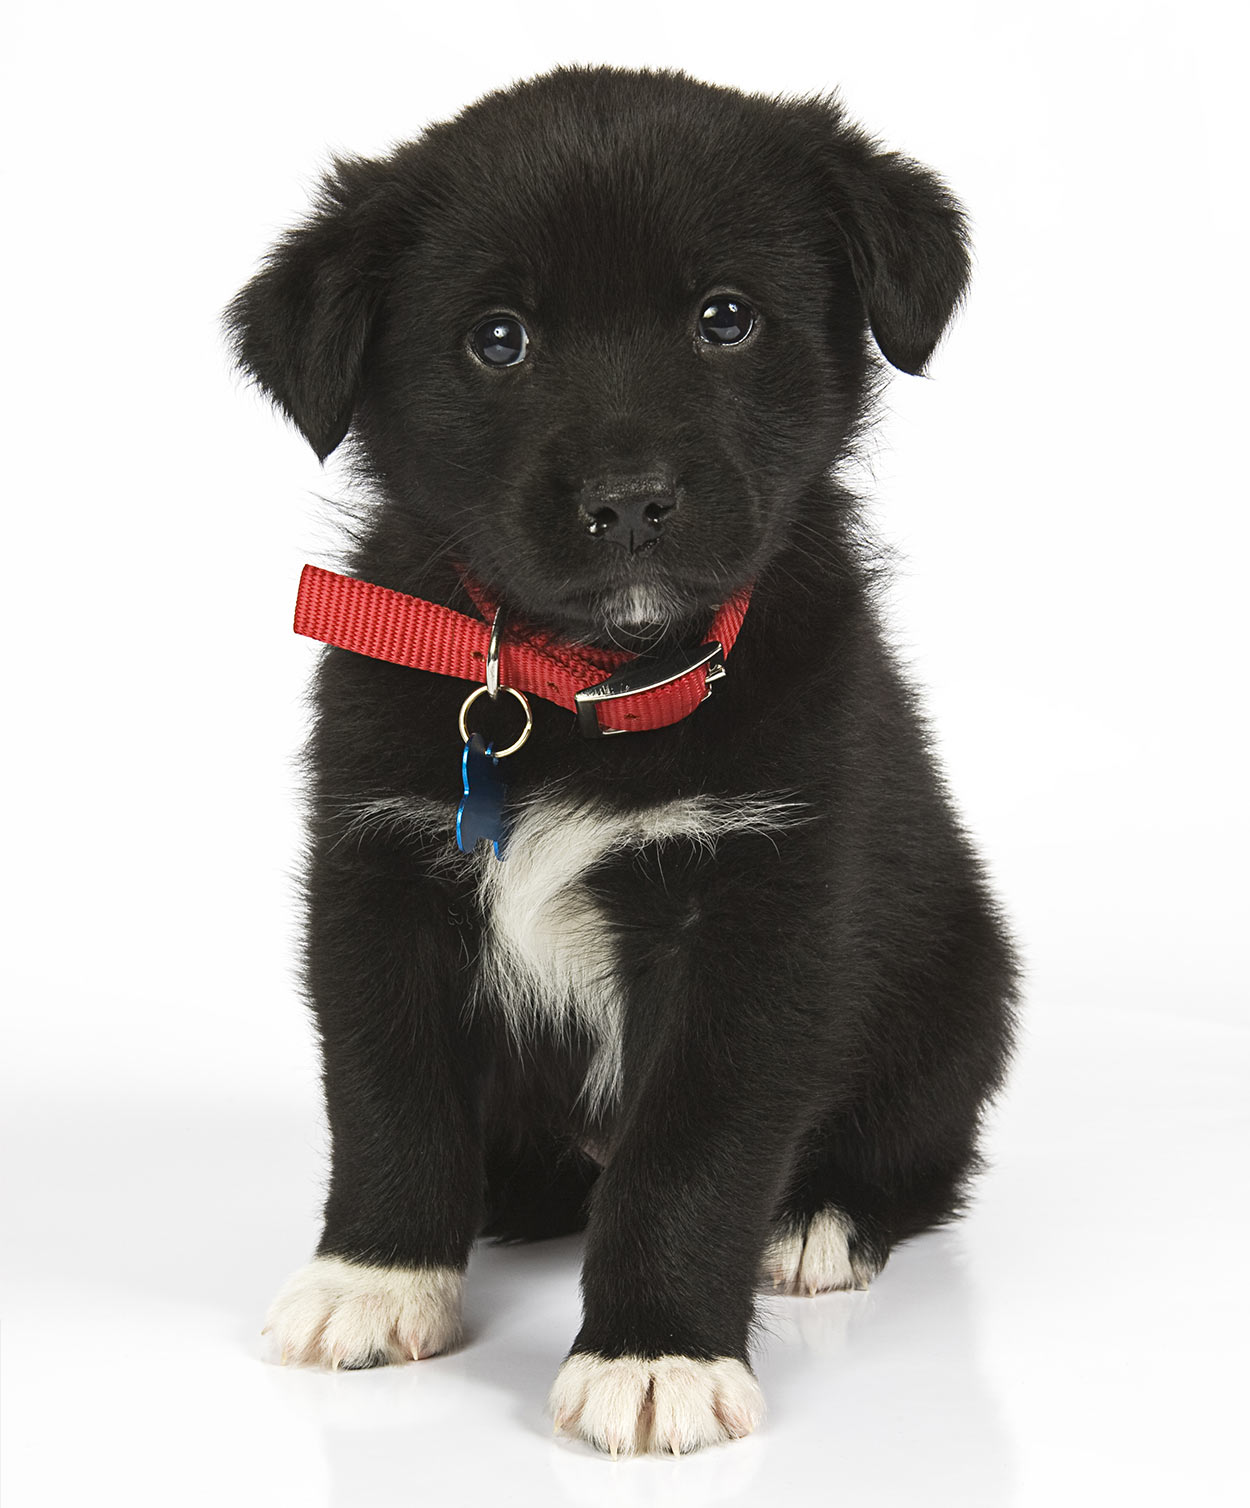 Australian Shepherd Lab Mix - Your Guide To The Aussiedor